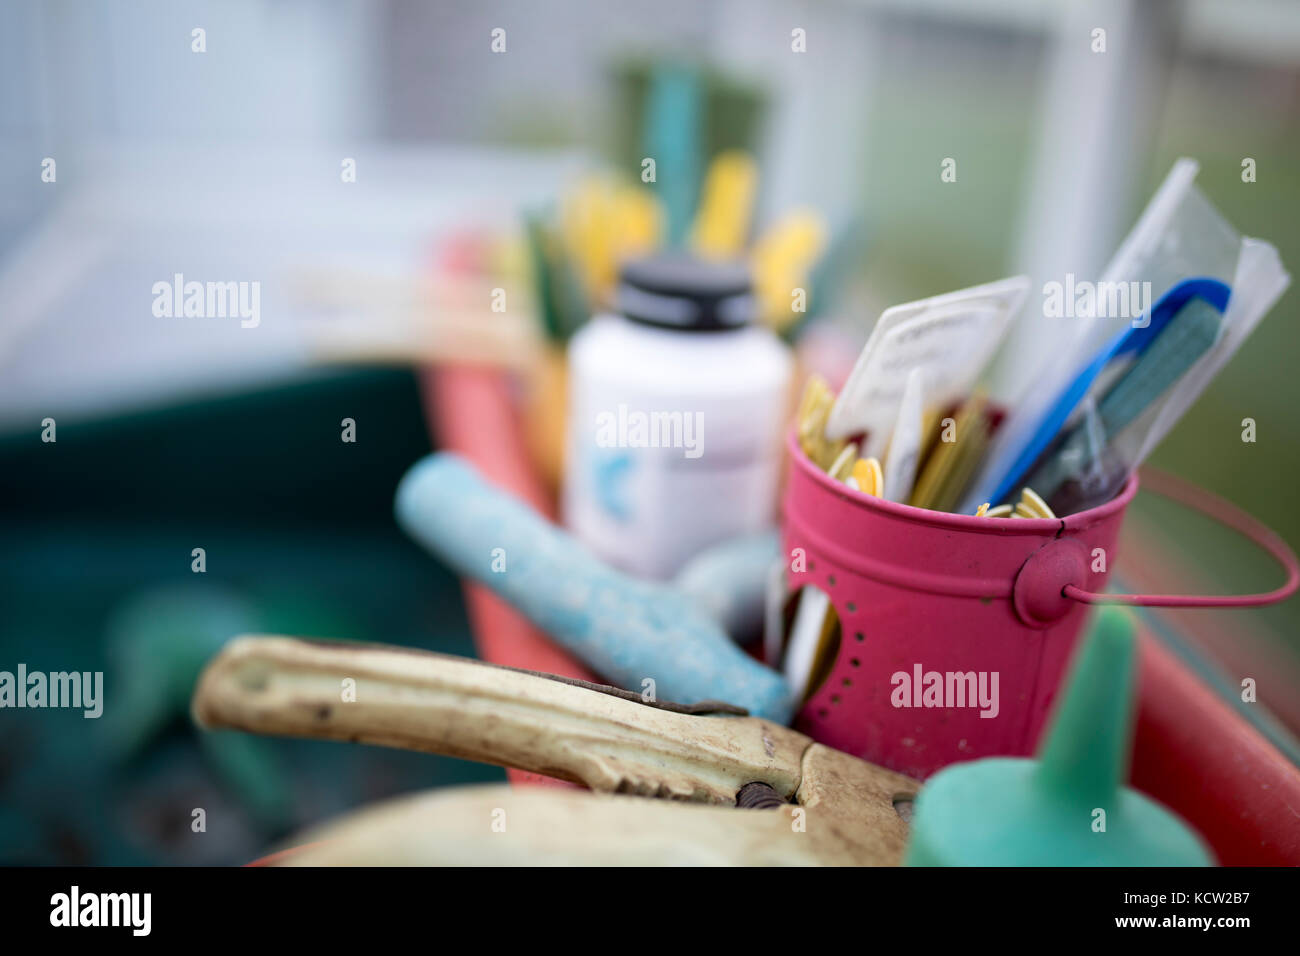 Close up of flower pot and tools in a green house or potting shed - Stock Image